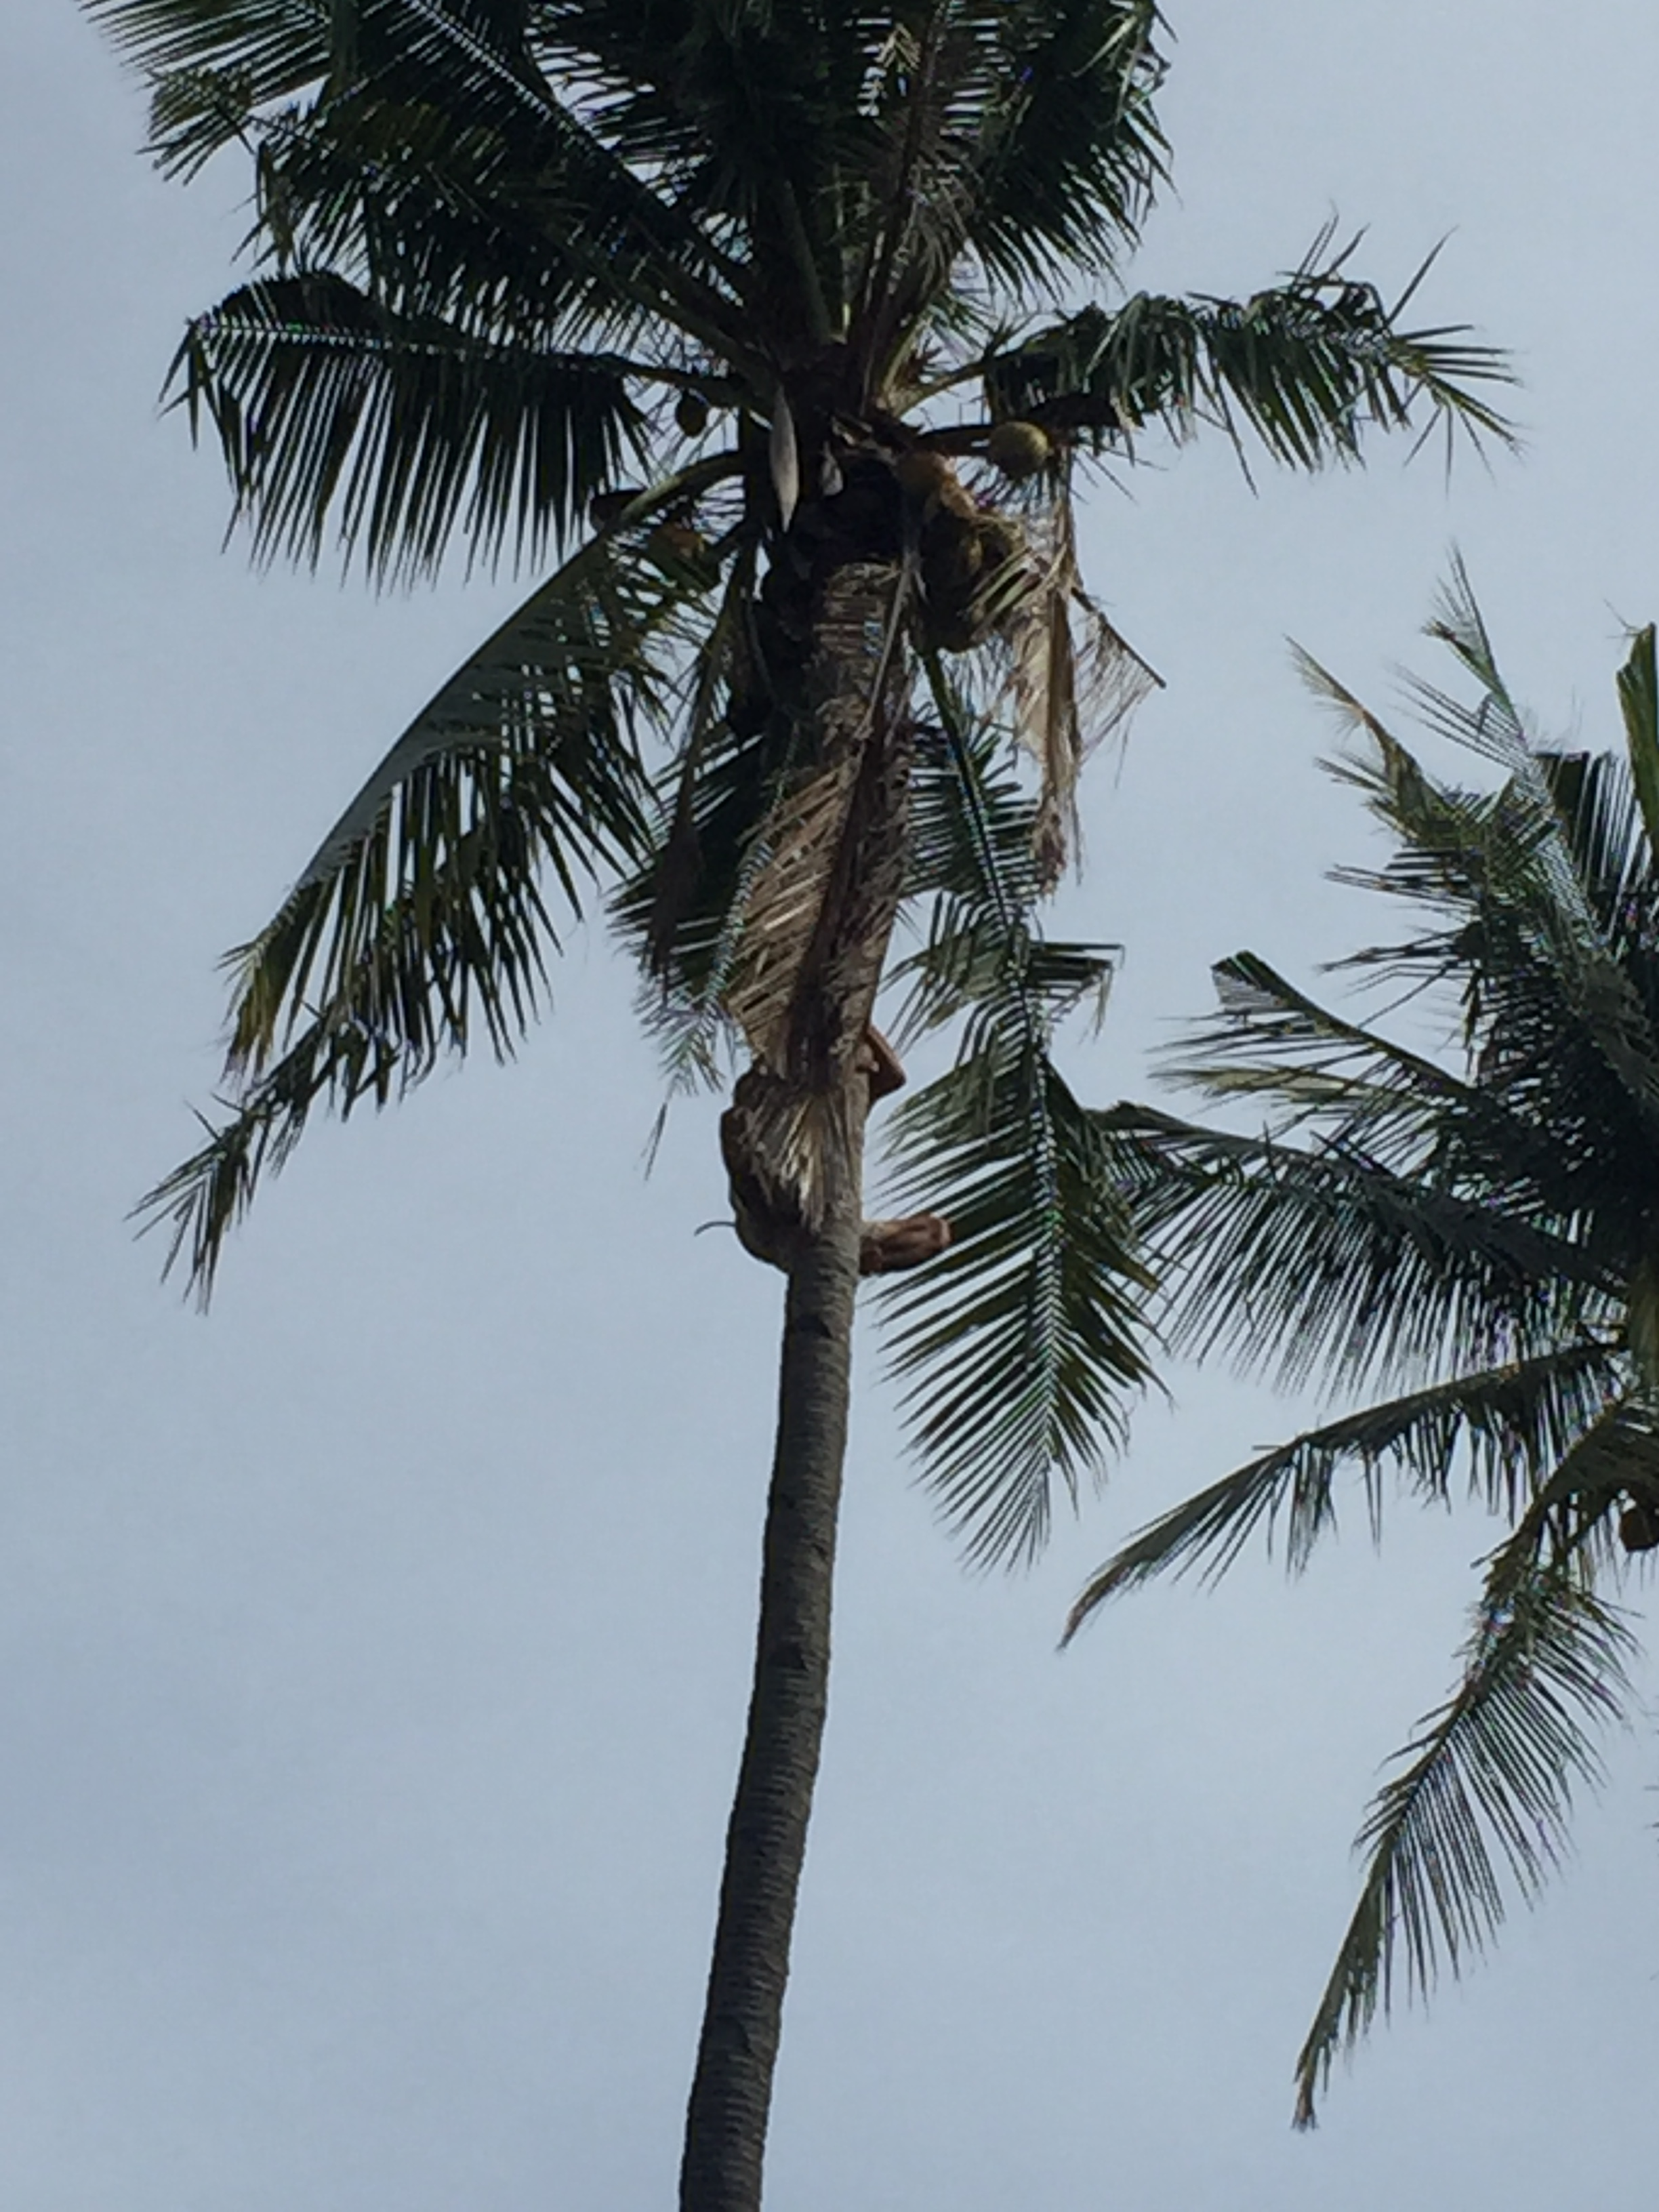 A local working at the hostel scales a 50-ft. coconut tree barefoot.